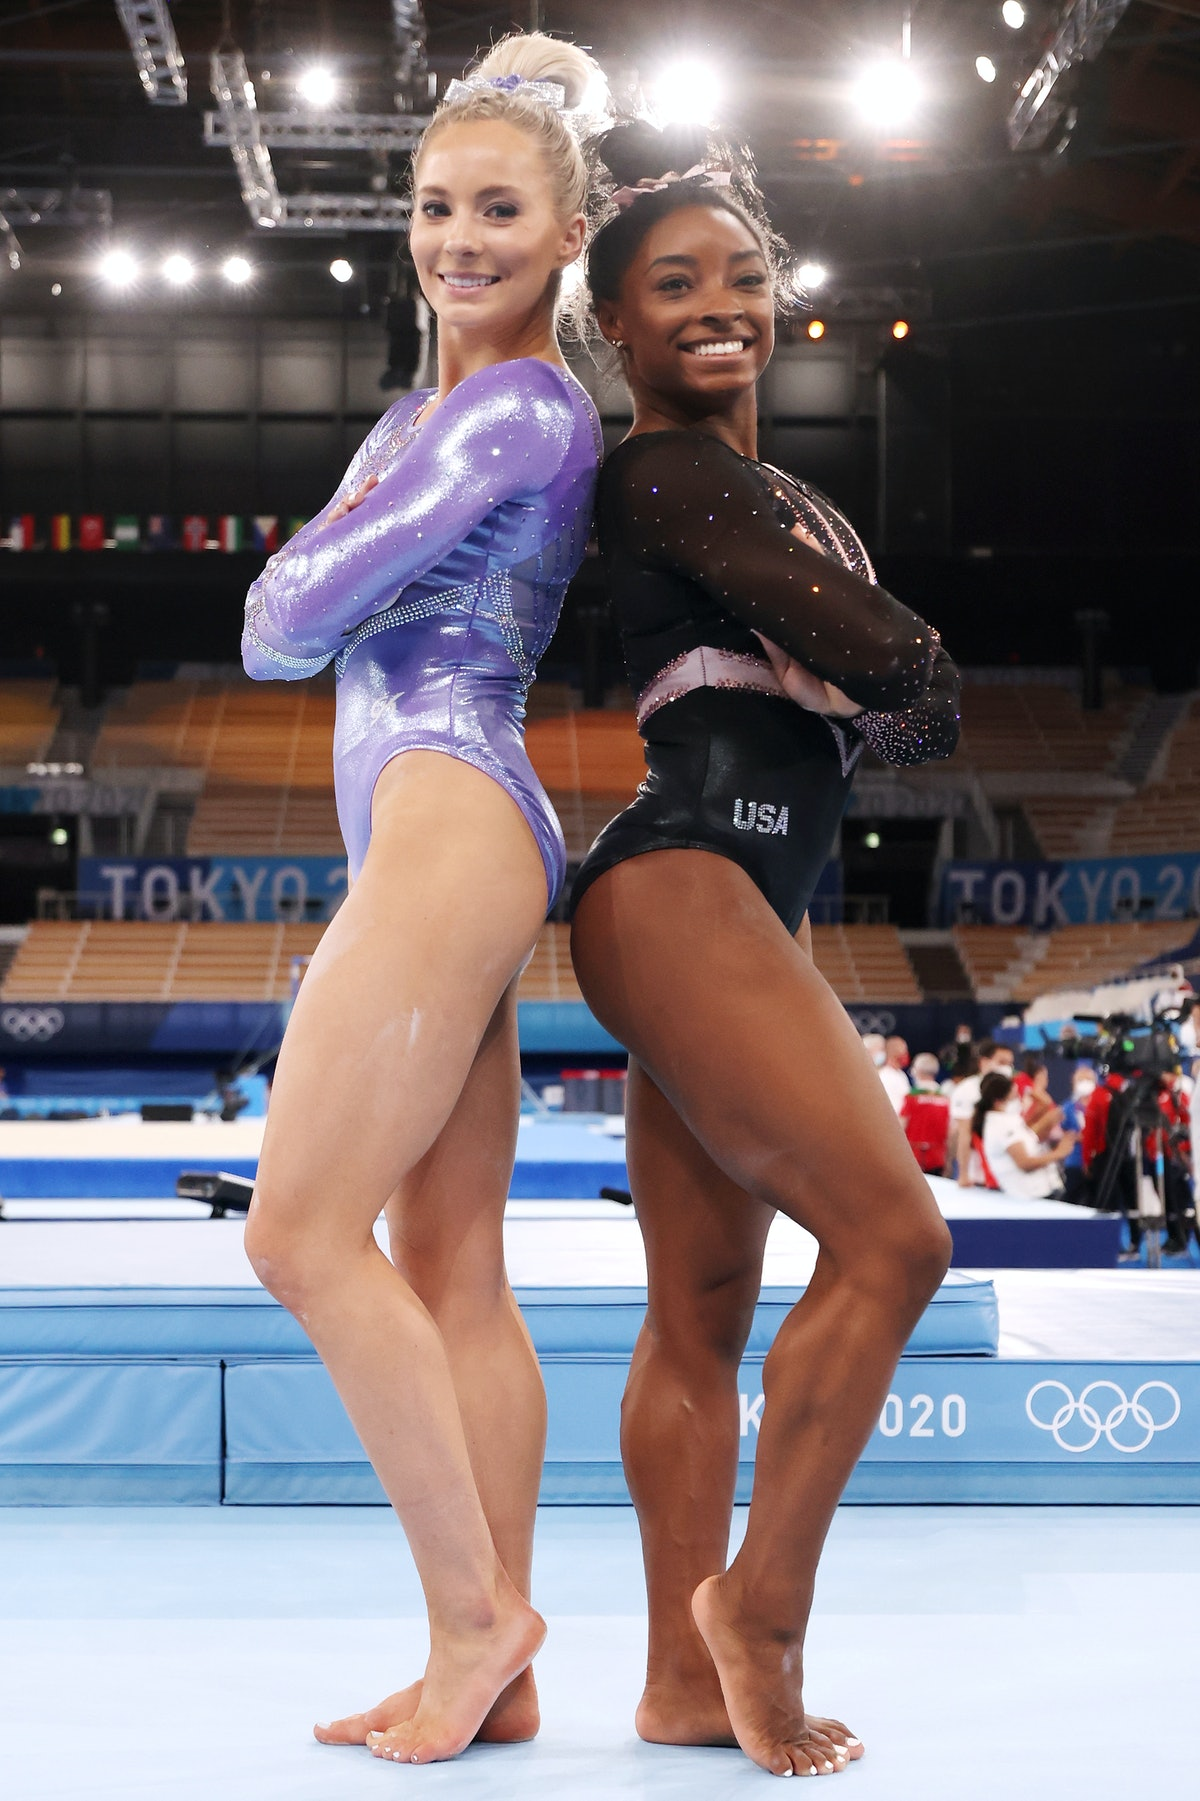 Team USA gymnasts MyKayla Skinner and Simone Biles pose for a picture in Swarowski-bedazzled GK Elit...